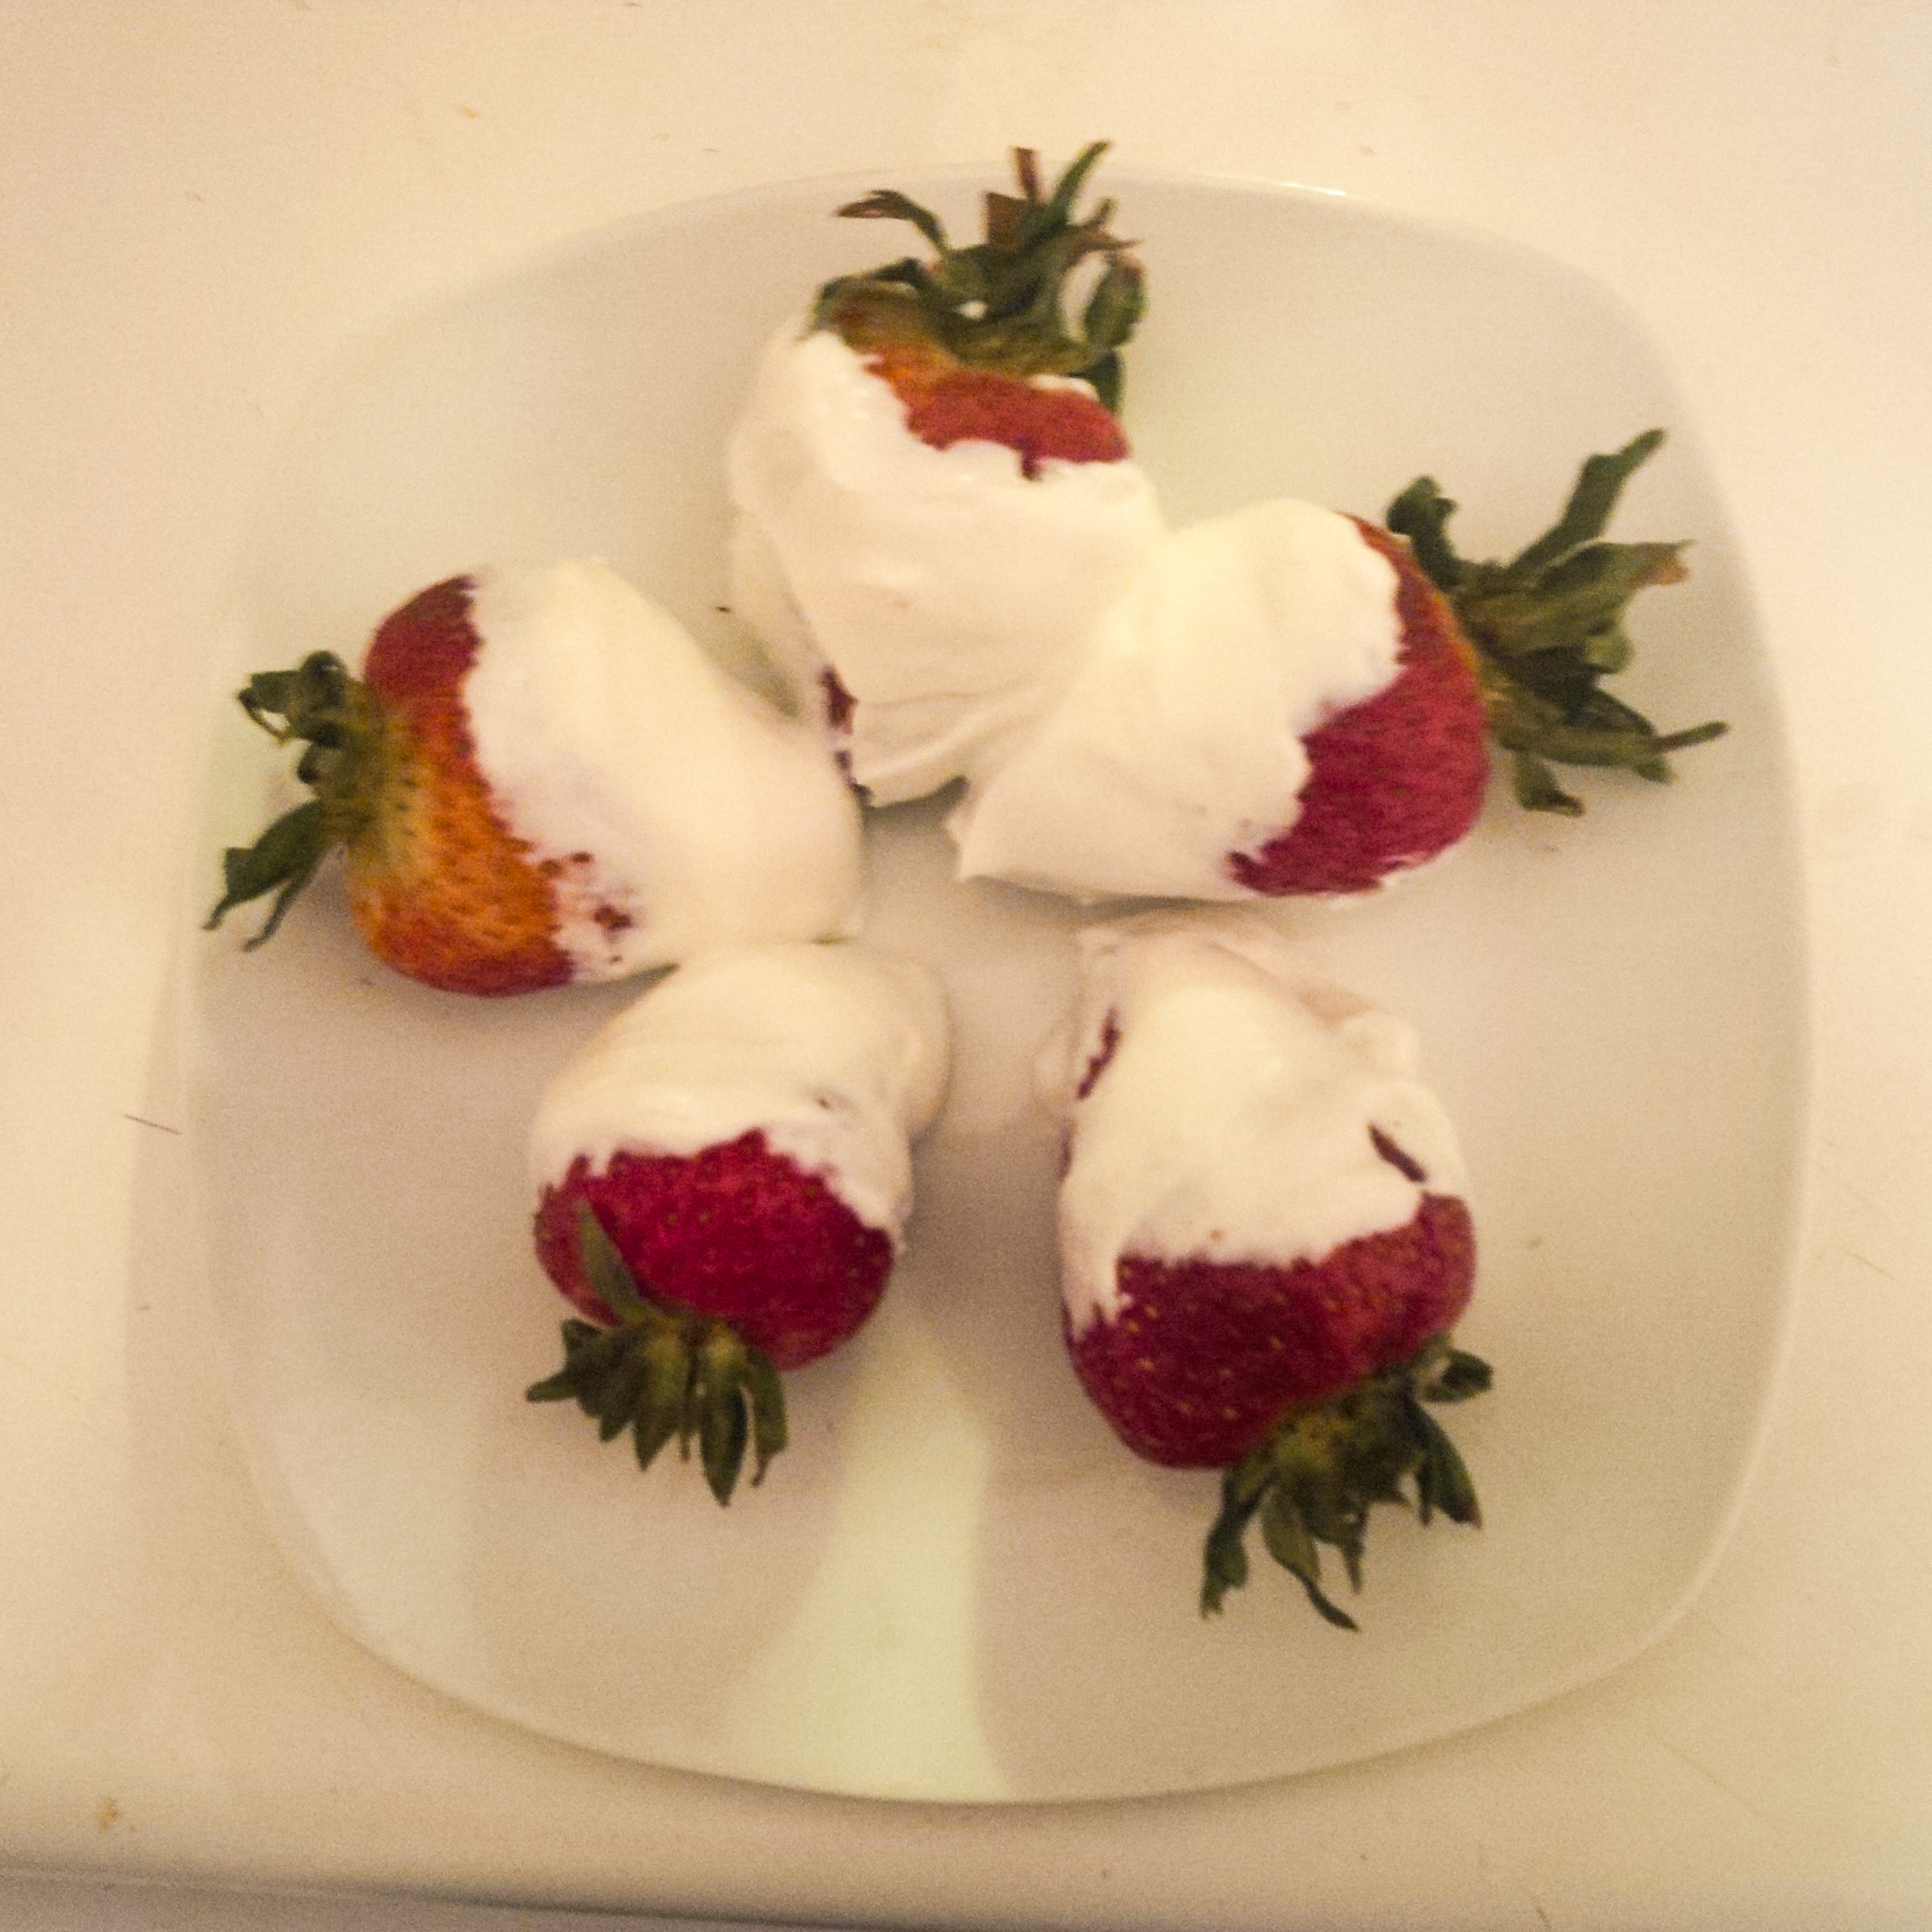 Strawberries in Greek yoghurt